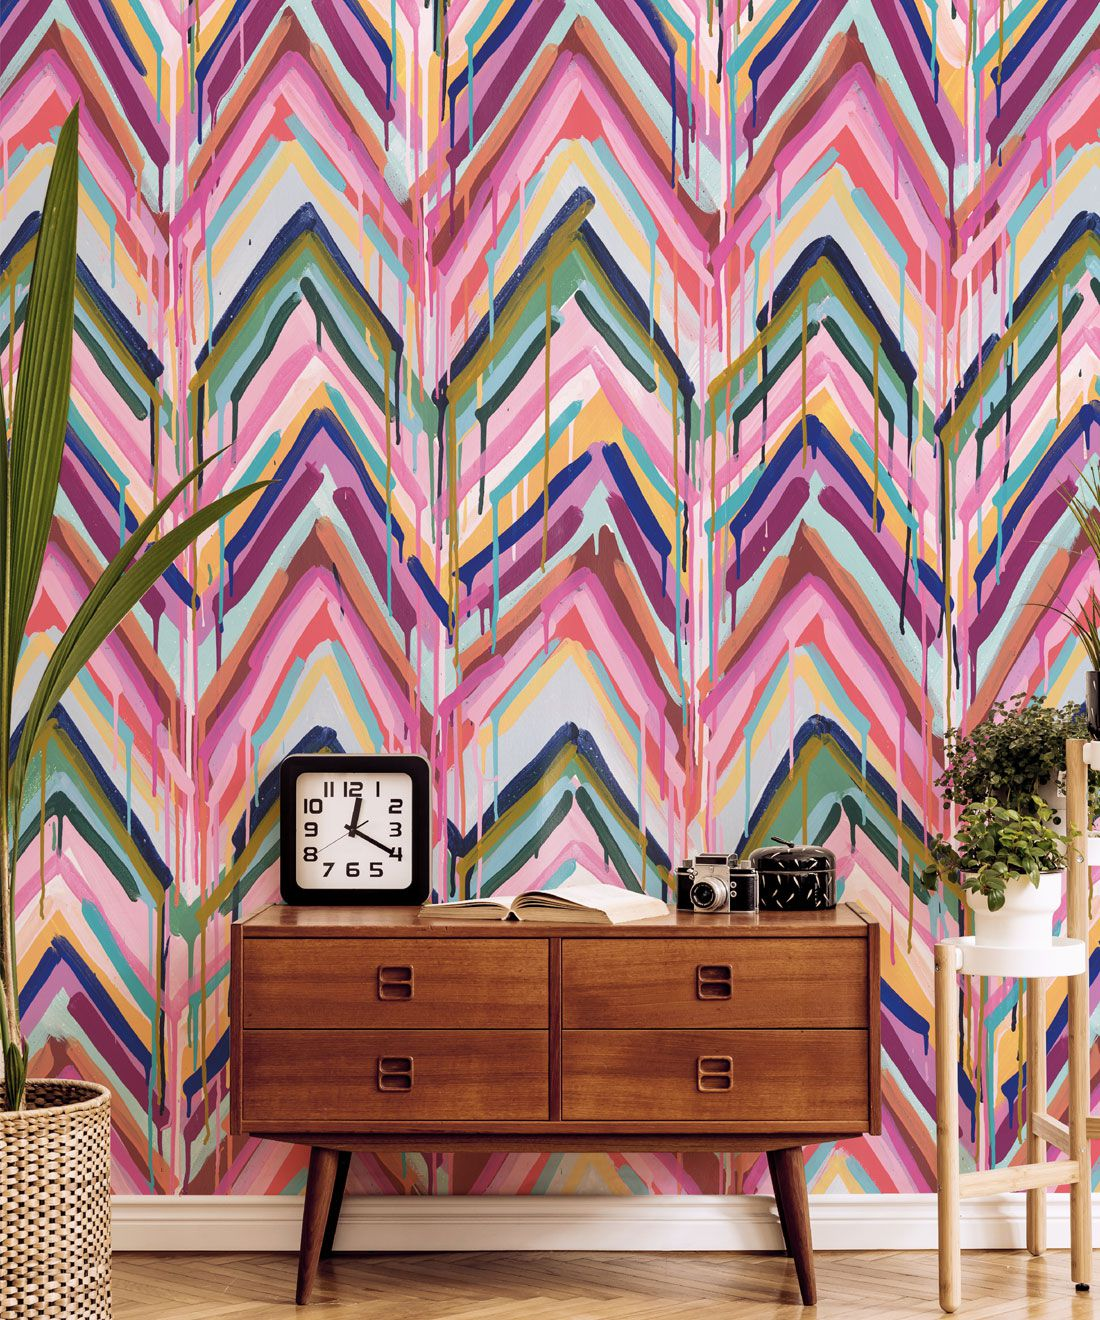 Crossroads Wallpaper • Colorful Painterly Wallpaper • Tiff Manuell • Chevron Wallpaper • Close Up Insitu